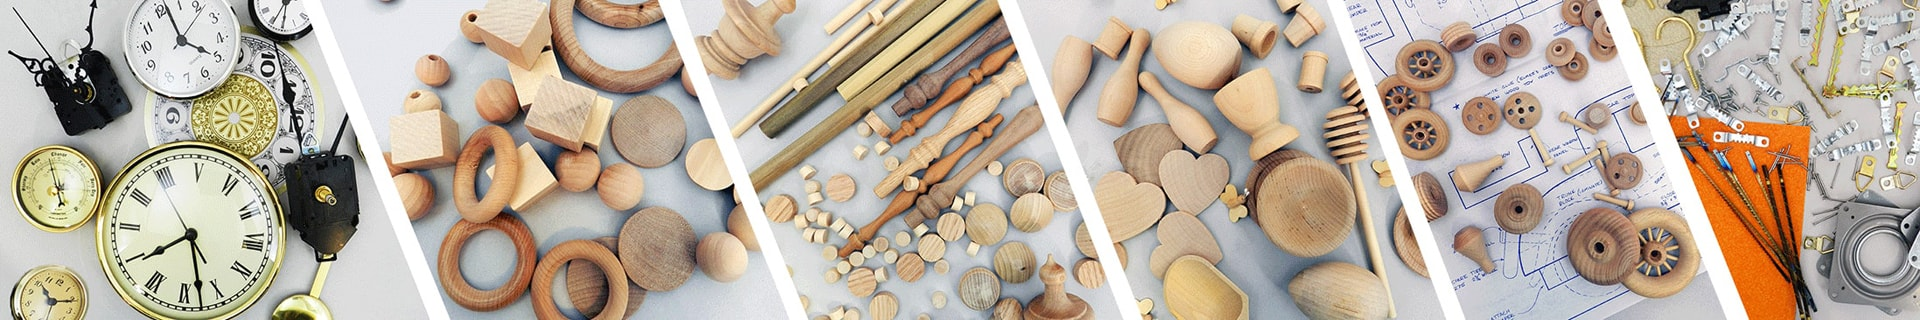 woodworking supplies, clock parts | Bear Woods Supply